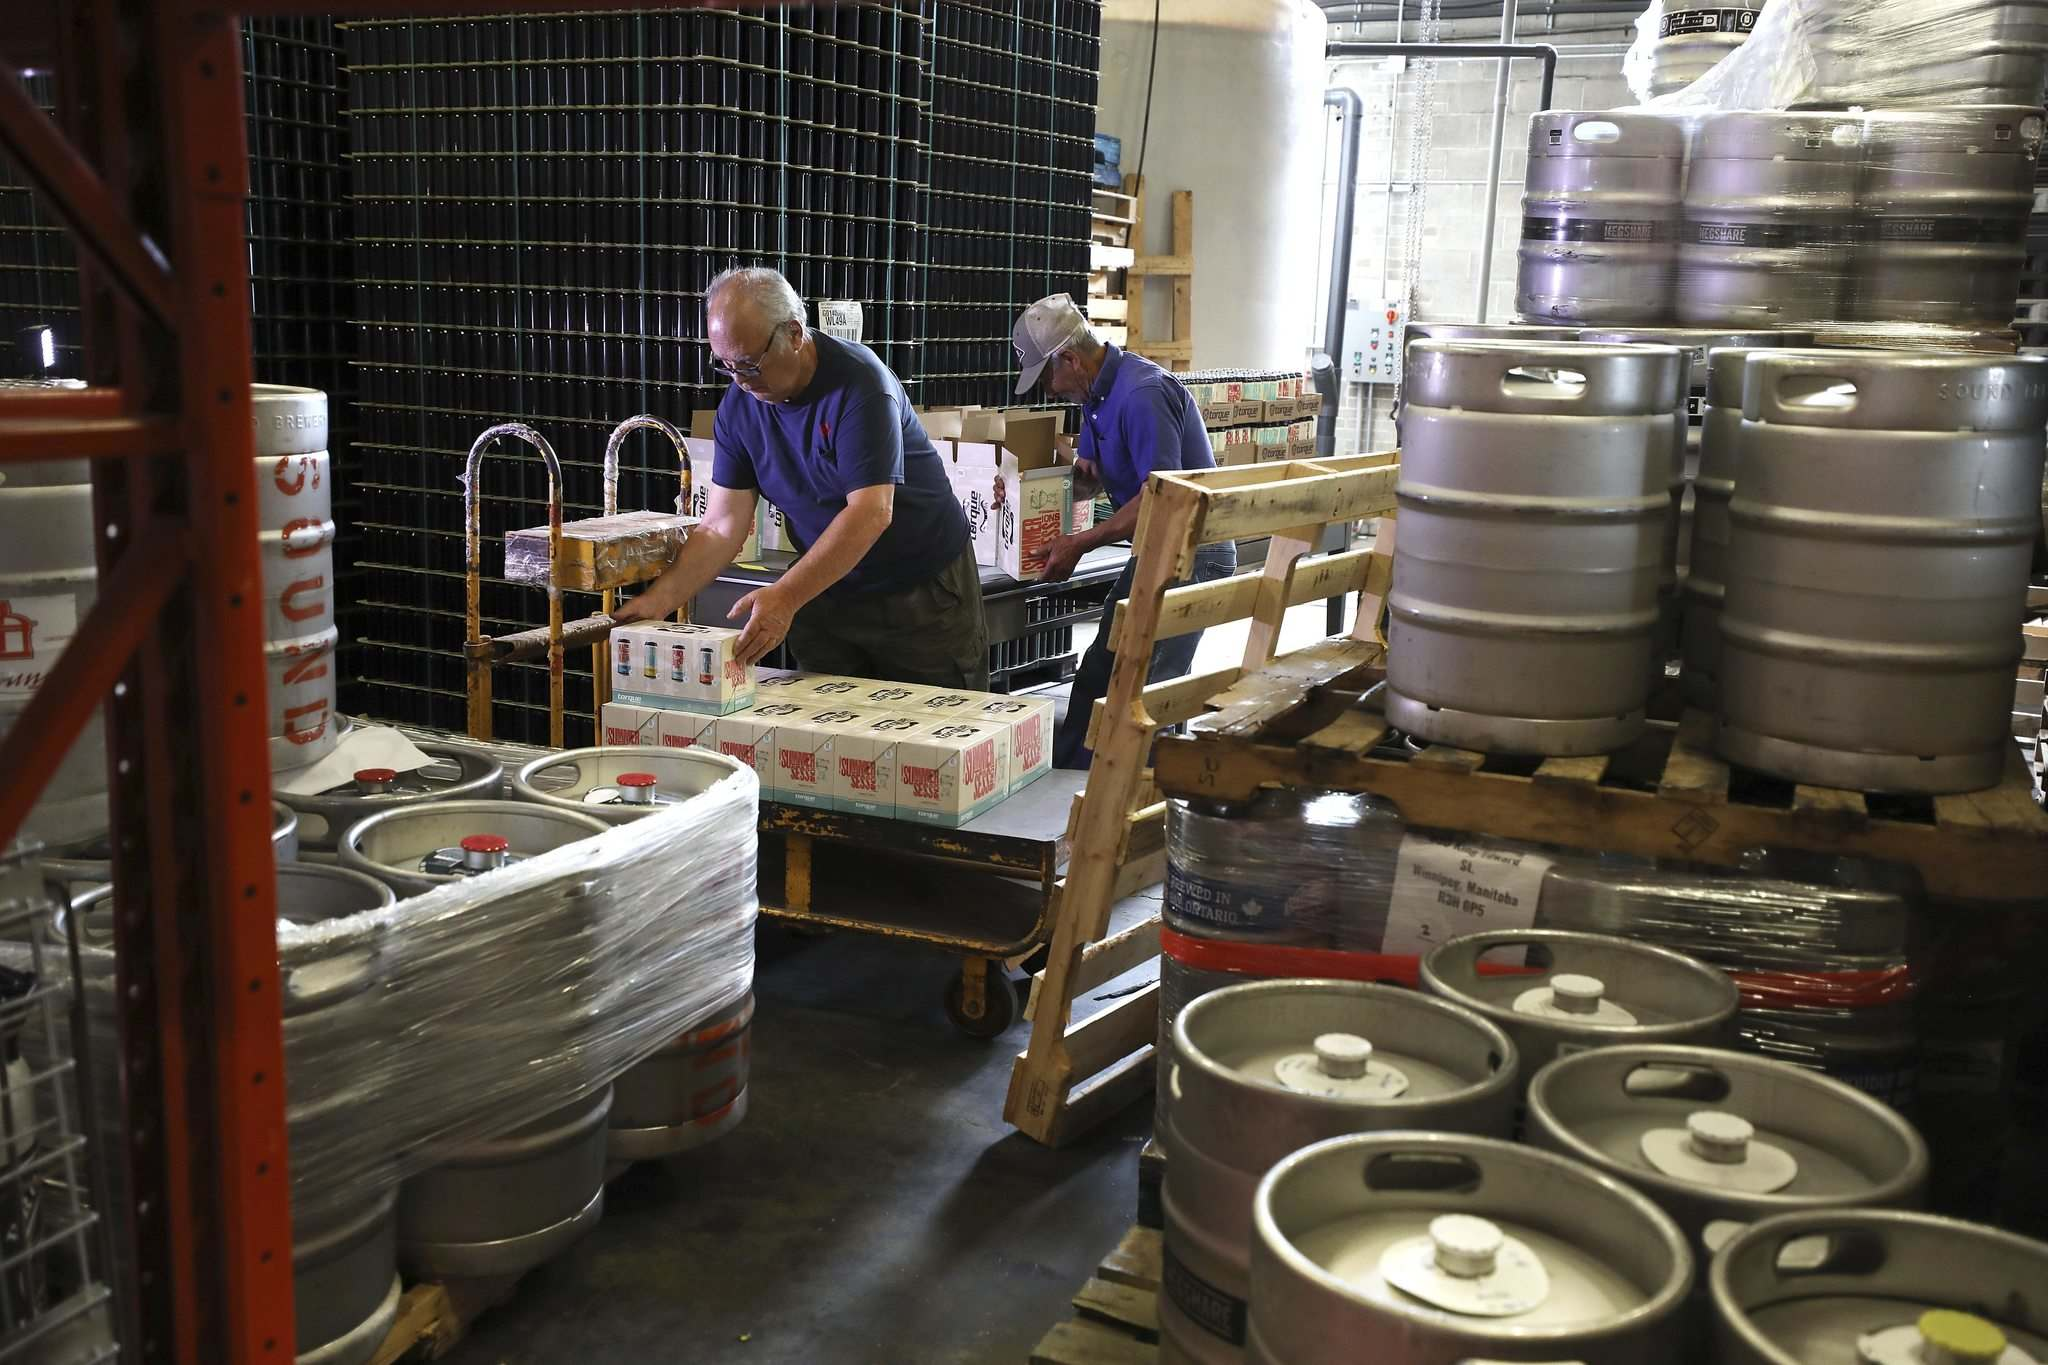 A shipment is prepared in Torque Brewing's distribution area. (Ruth Bonneville / Winnipeg Free Press)